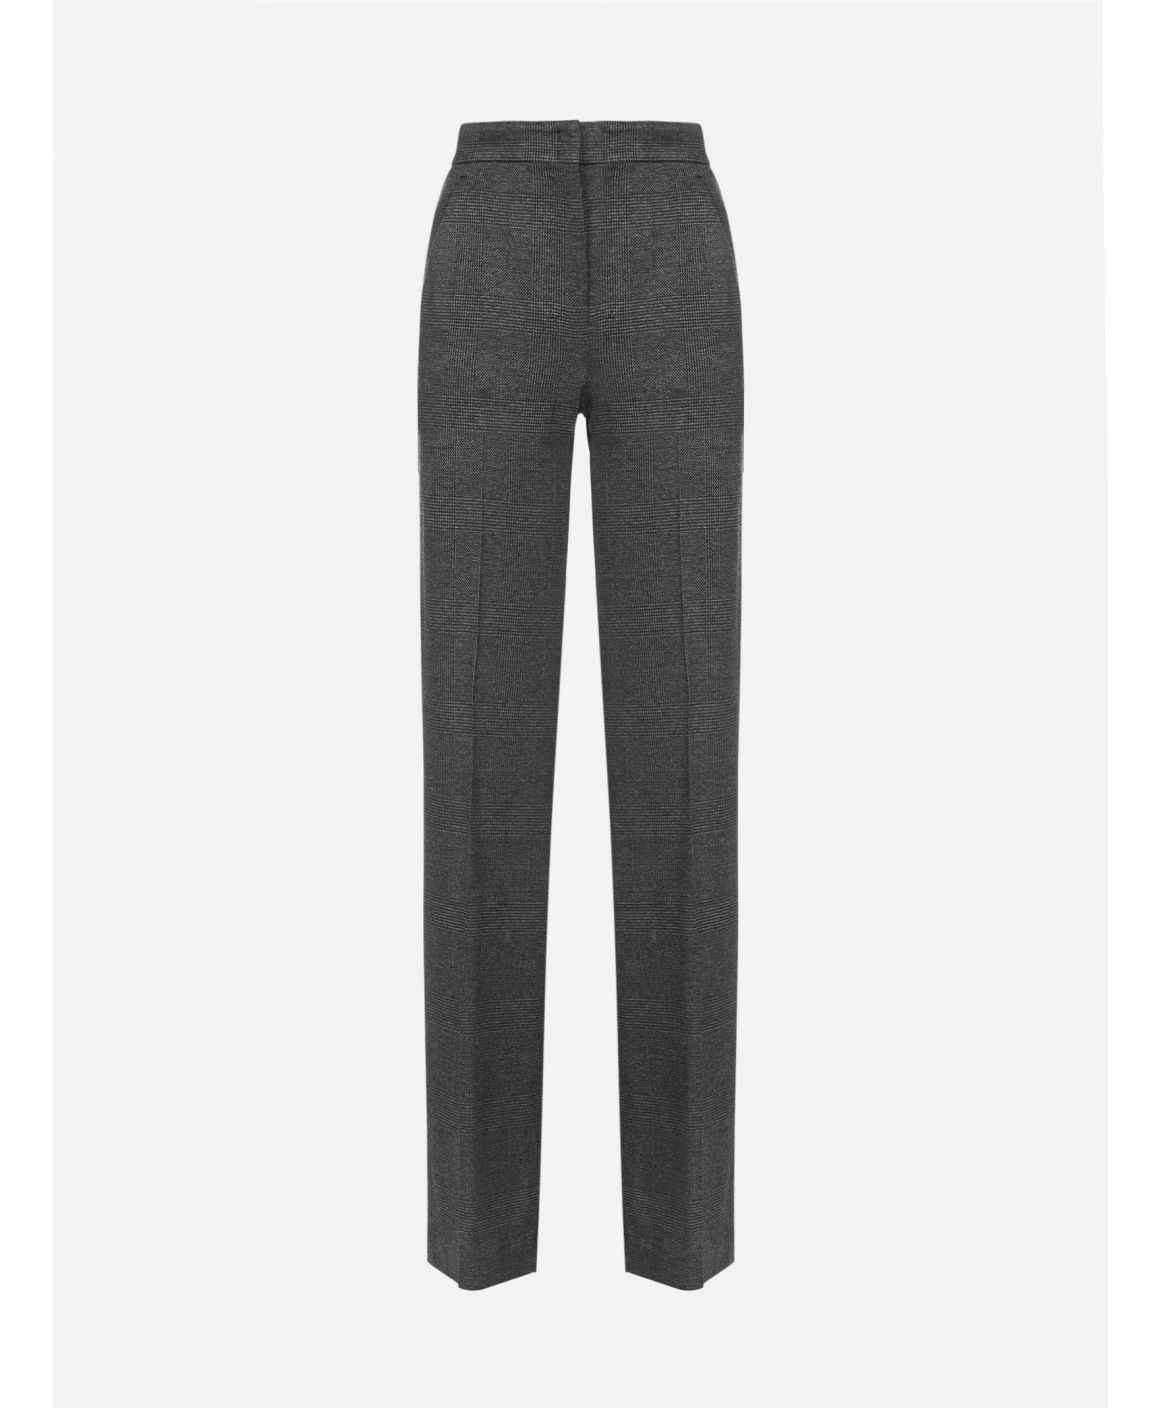 Nolana Prince-of-Wales wool and viscose trousers